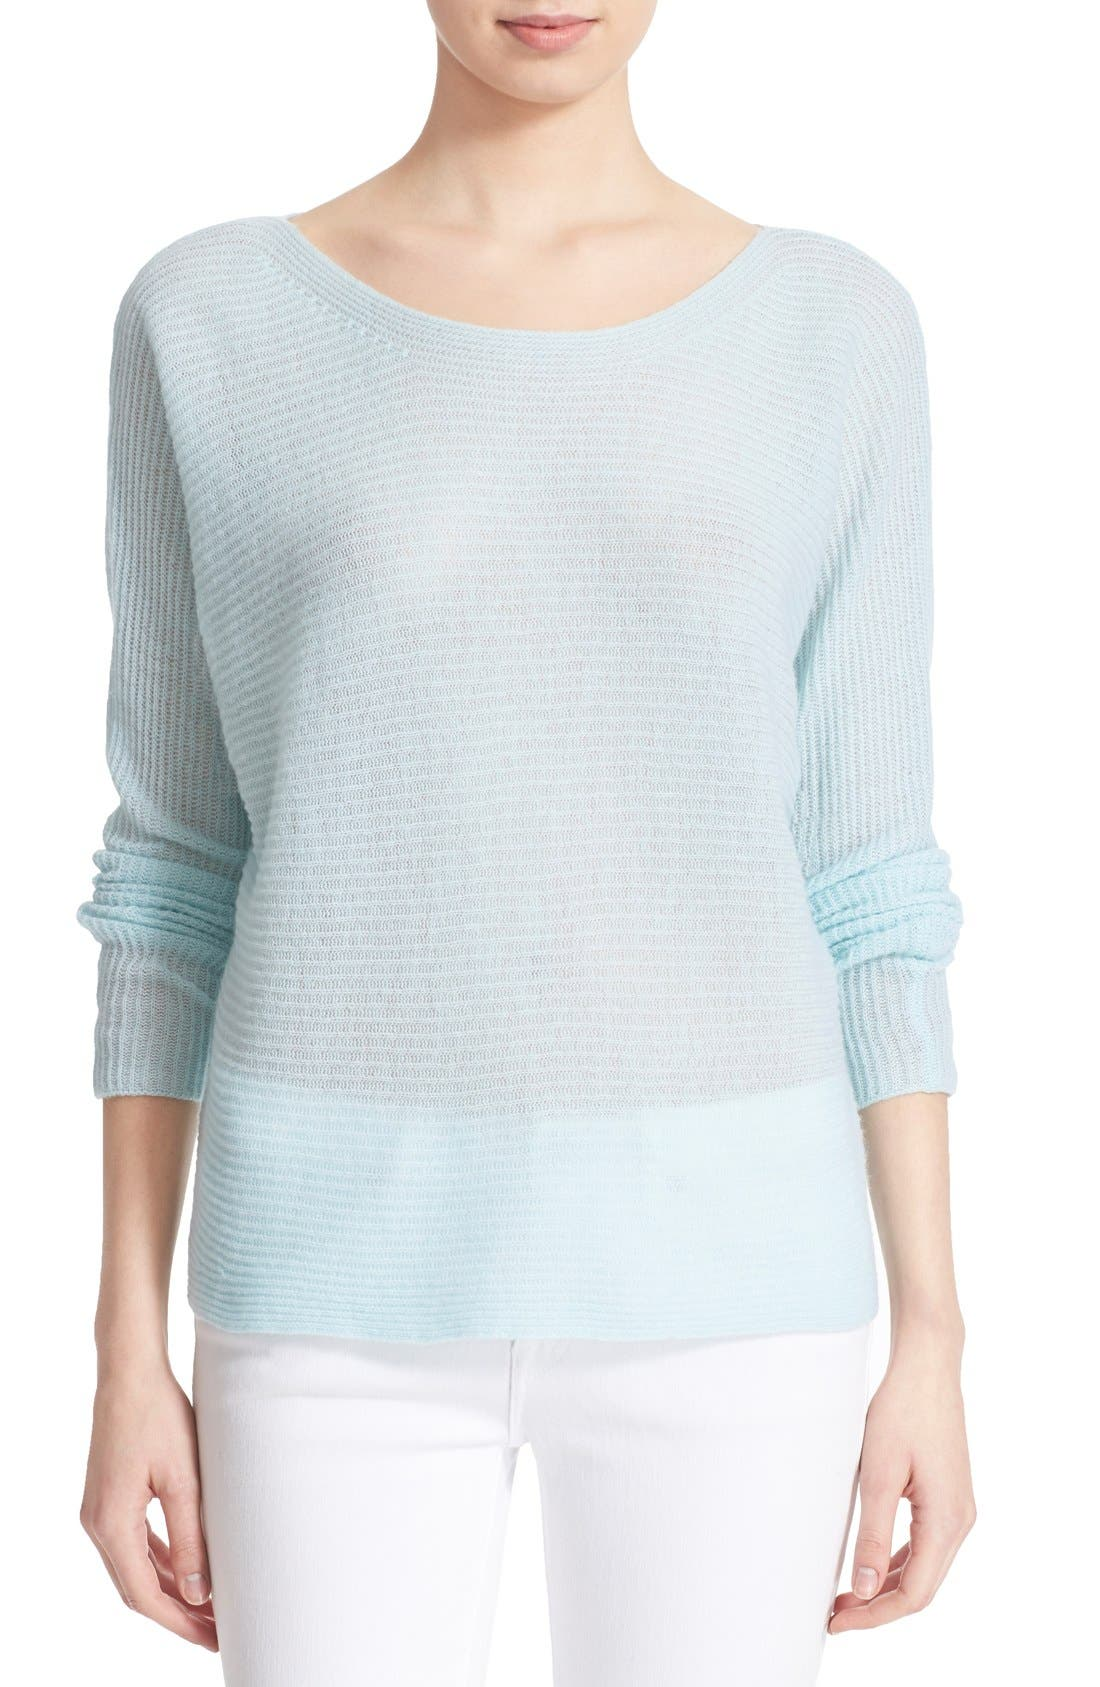 Alternate Image 1 Selected - Joie 'Kerenza' Cashmere Sweater